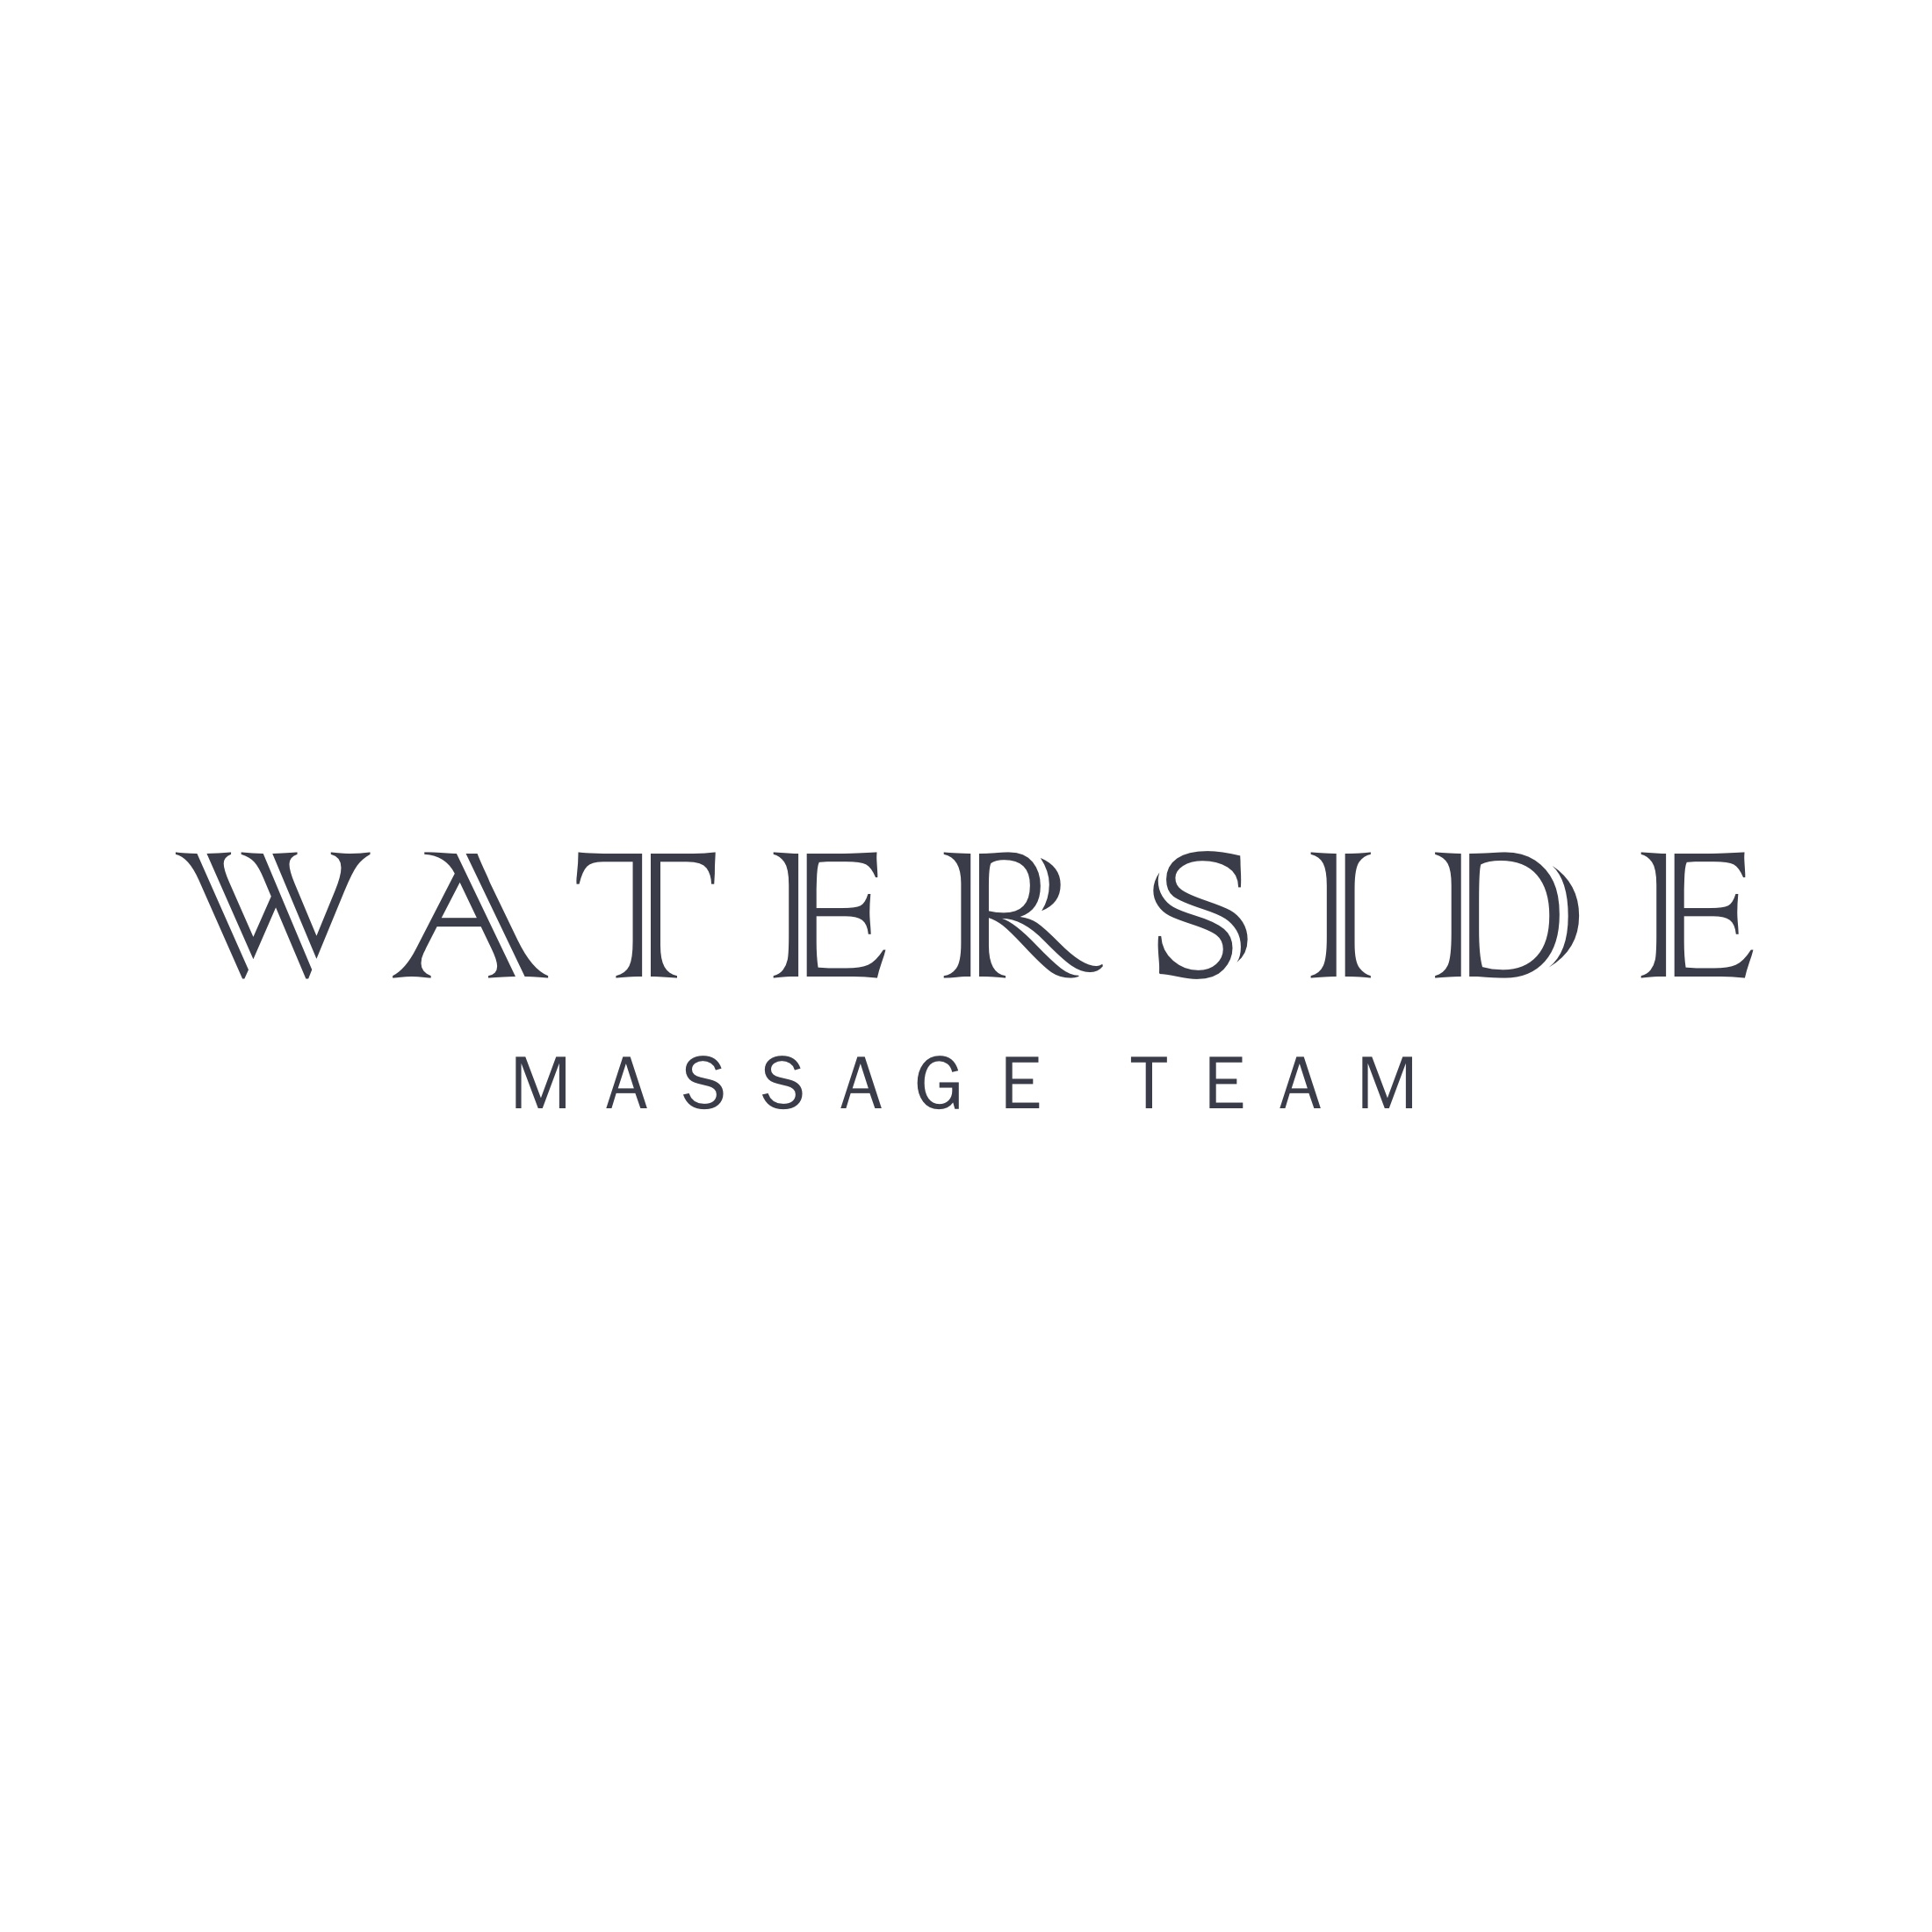 waterside massage team